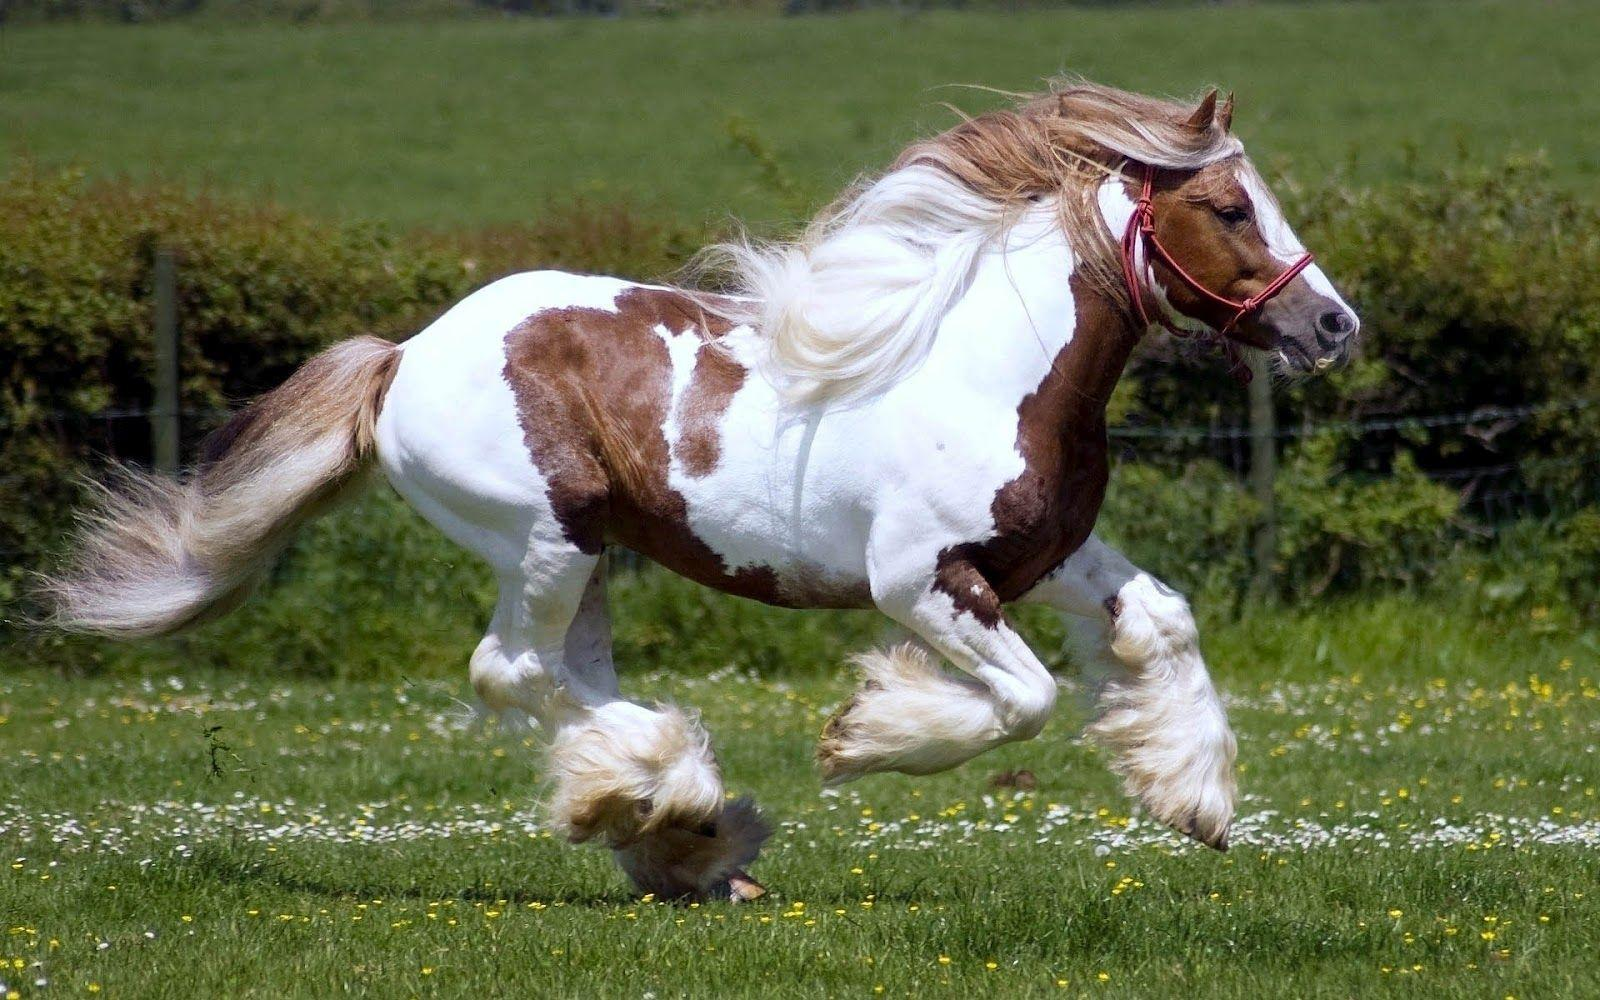 horse cute wallpapers horses running brown fast animal